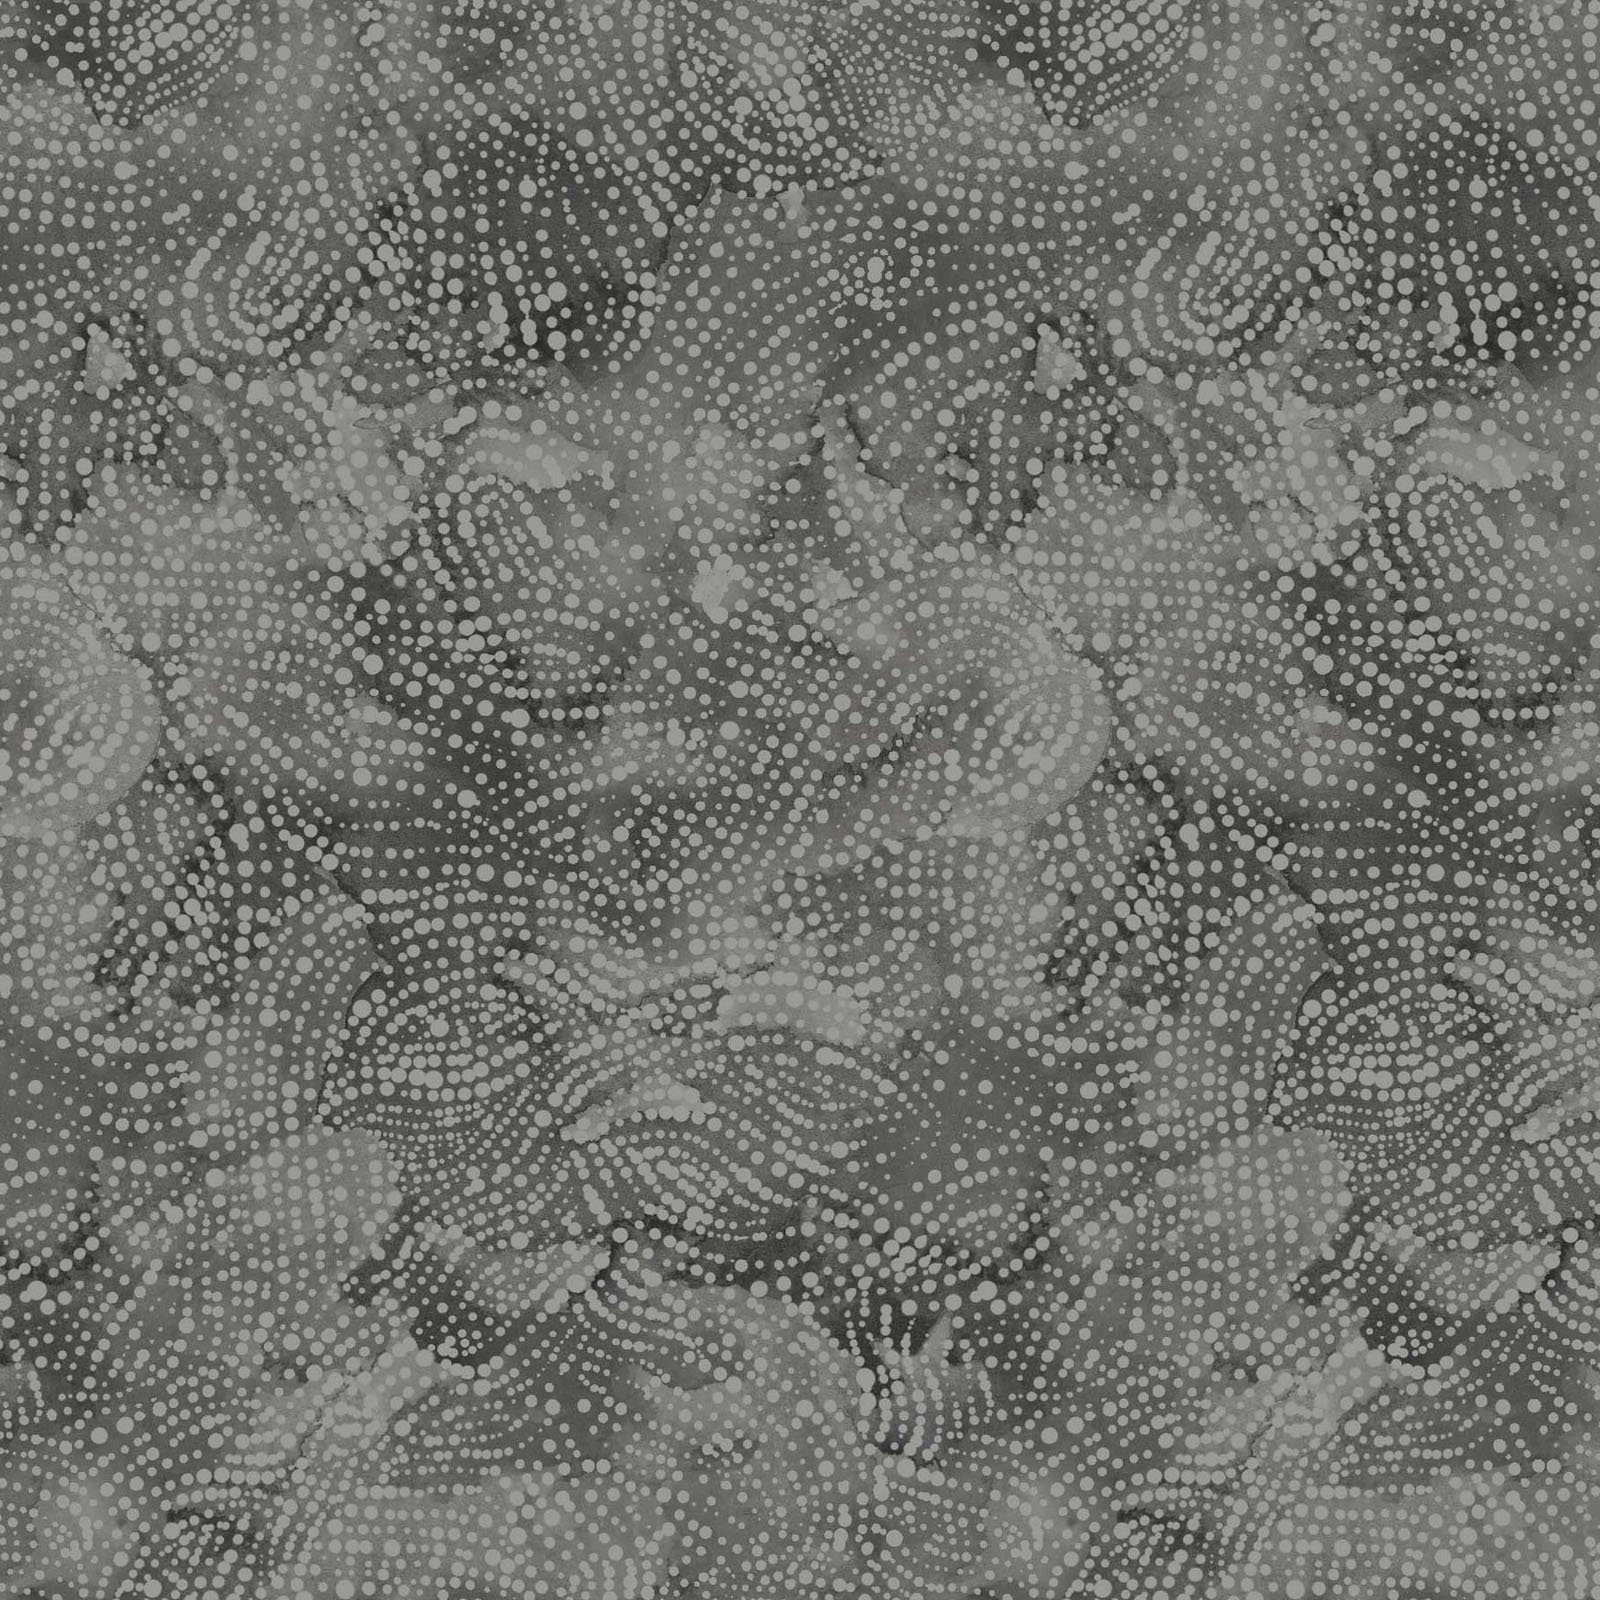 SERE-4492 DS - SERENITY BY JETTI HOME DK SILVER - ARRIVING IN JULY 2021